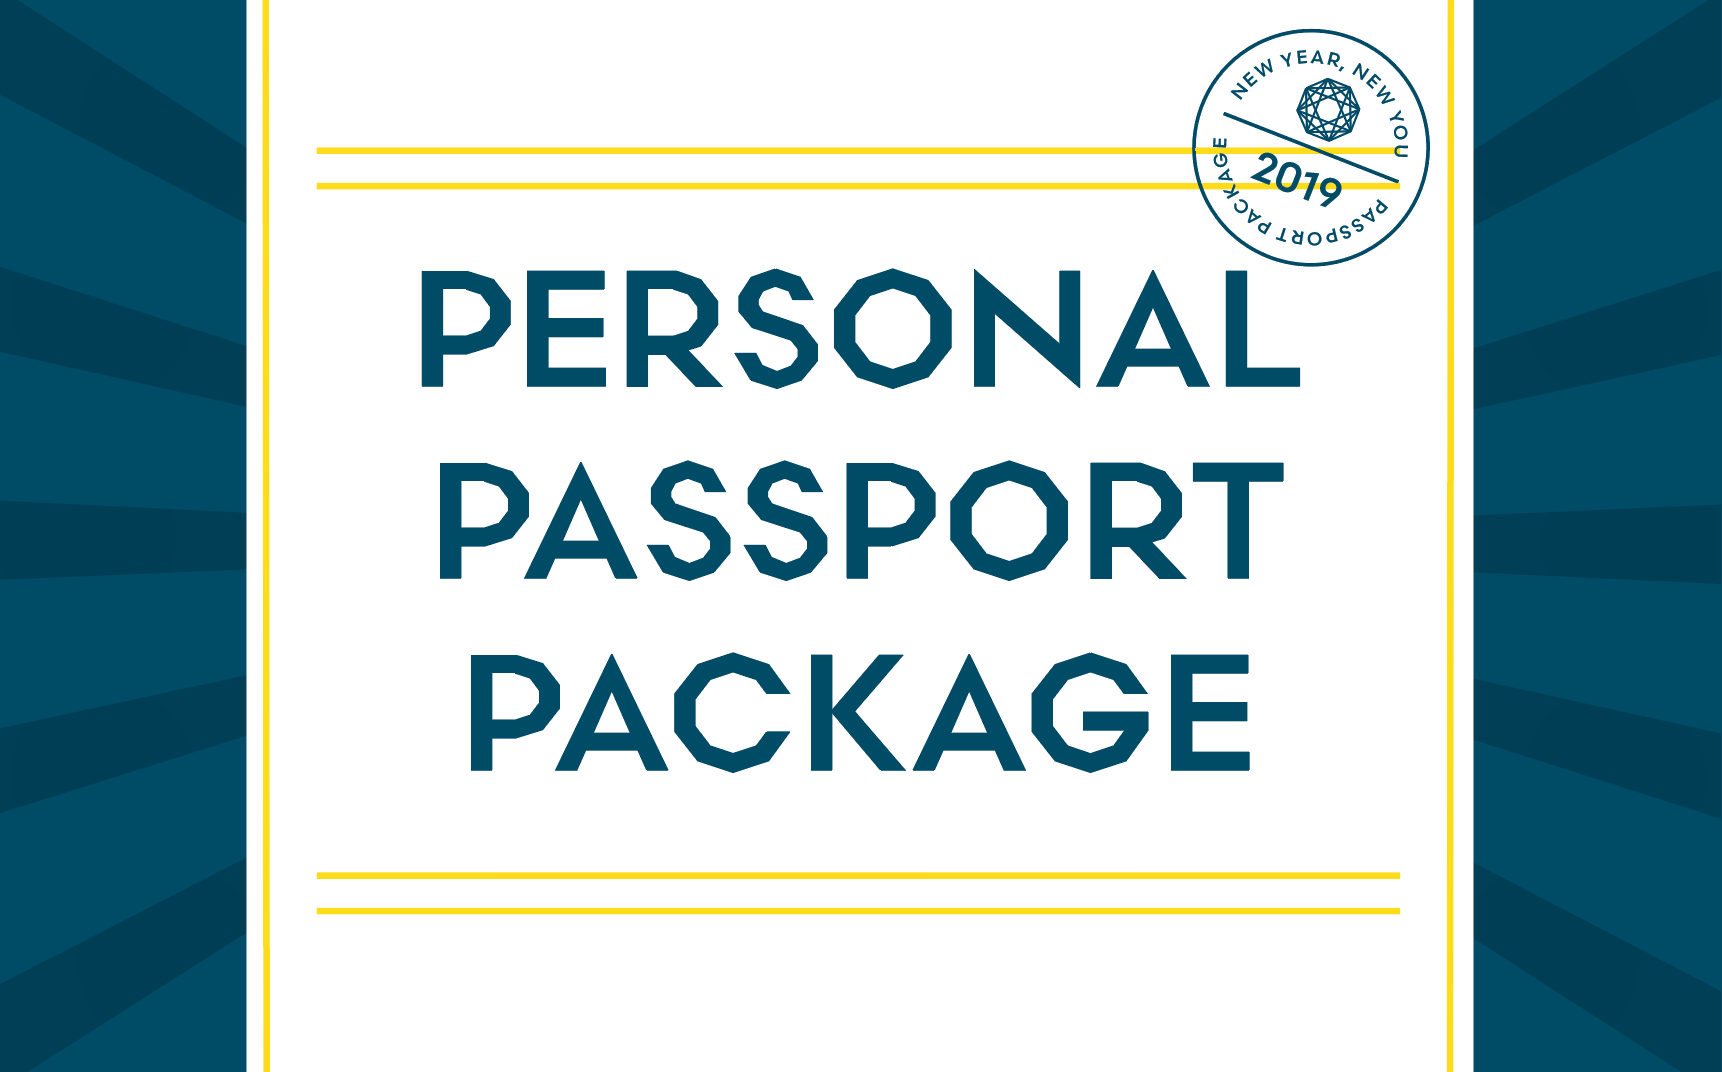 Personal Passport Package Training Promo